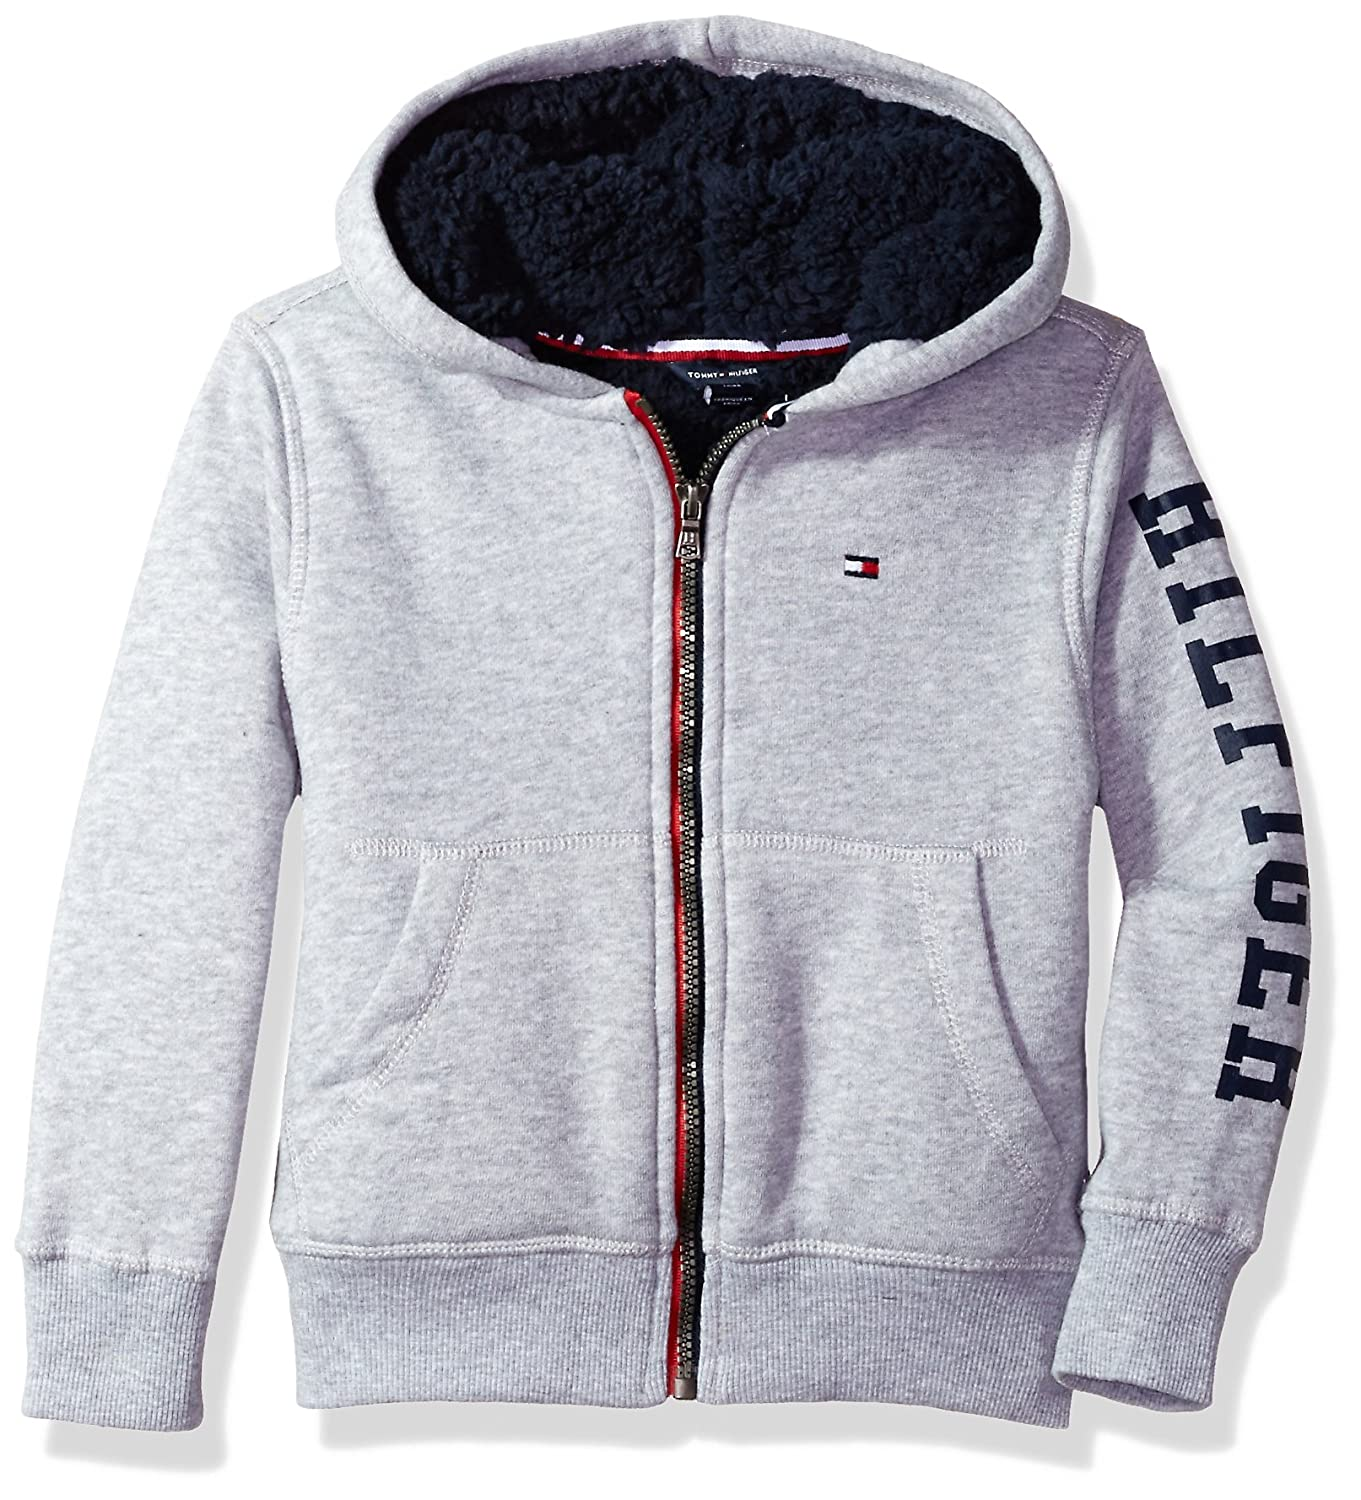 37b320286357 Tommy Hilfiger one of the world\'s leading designer lifestyle brands and is  internationally recognized for celebrating the essence of classic American  cool ...